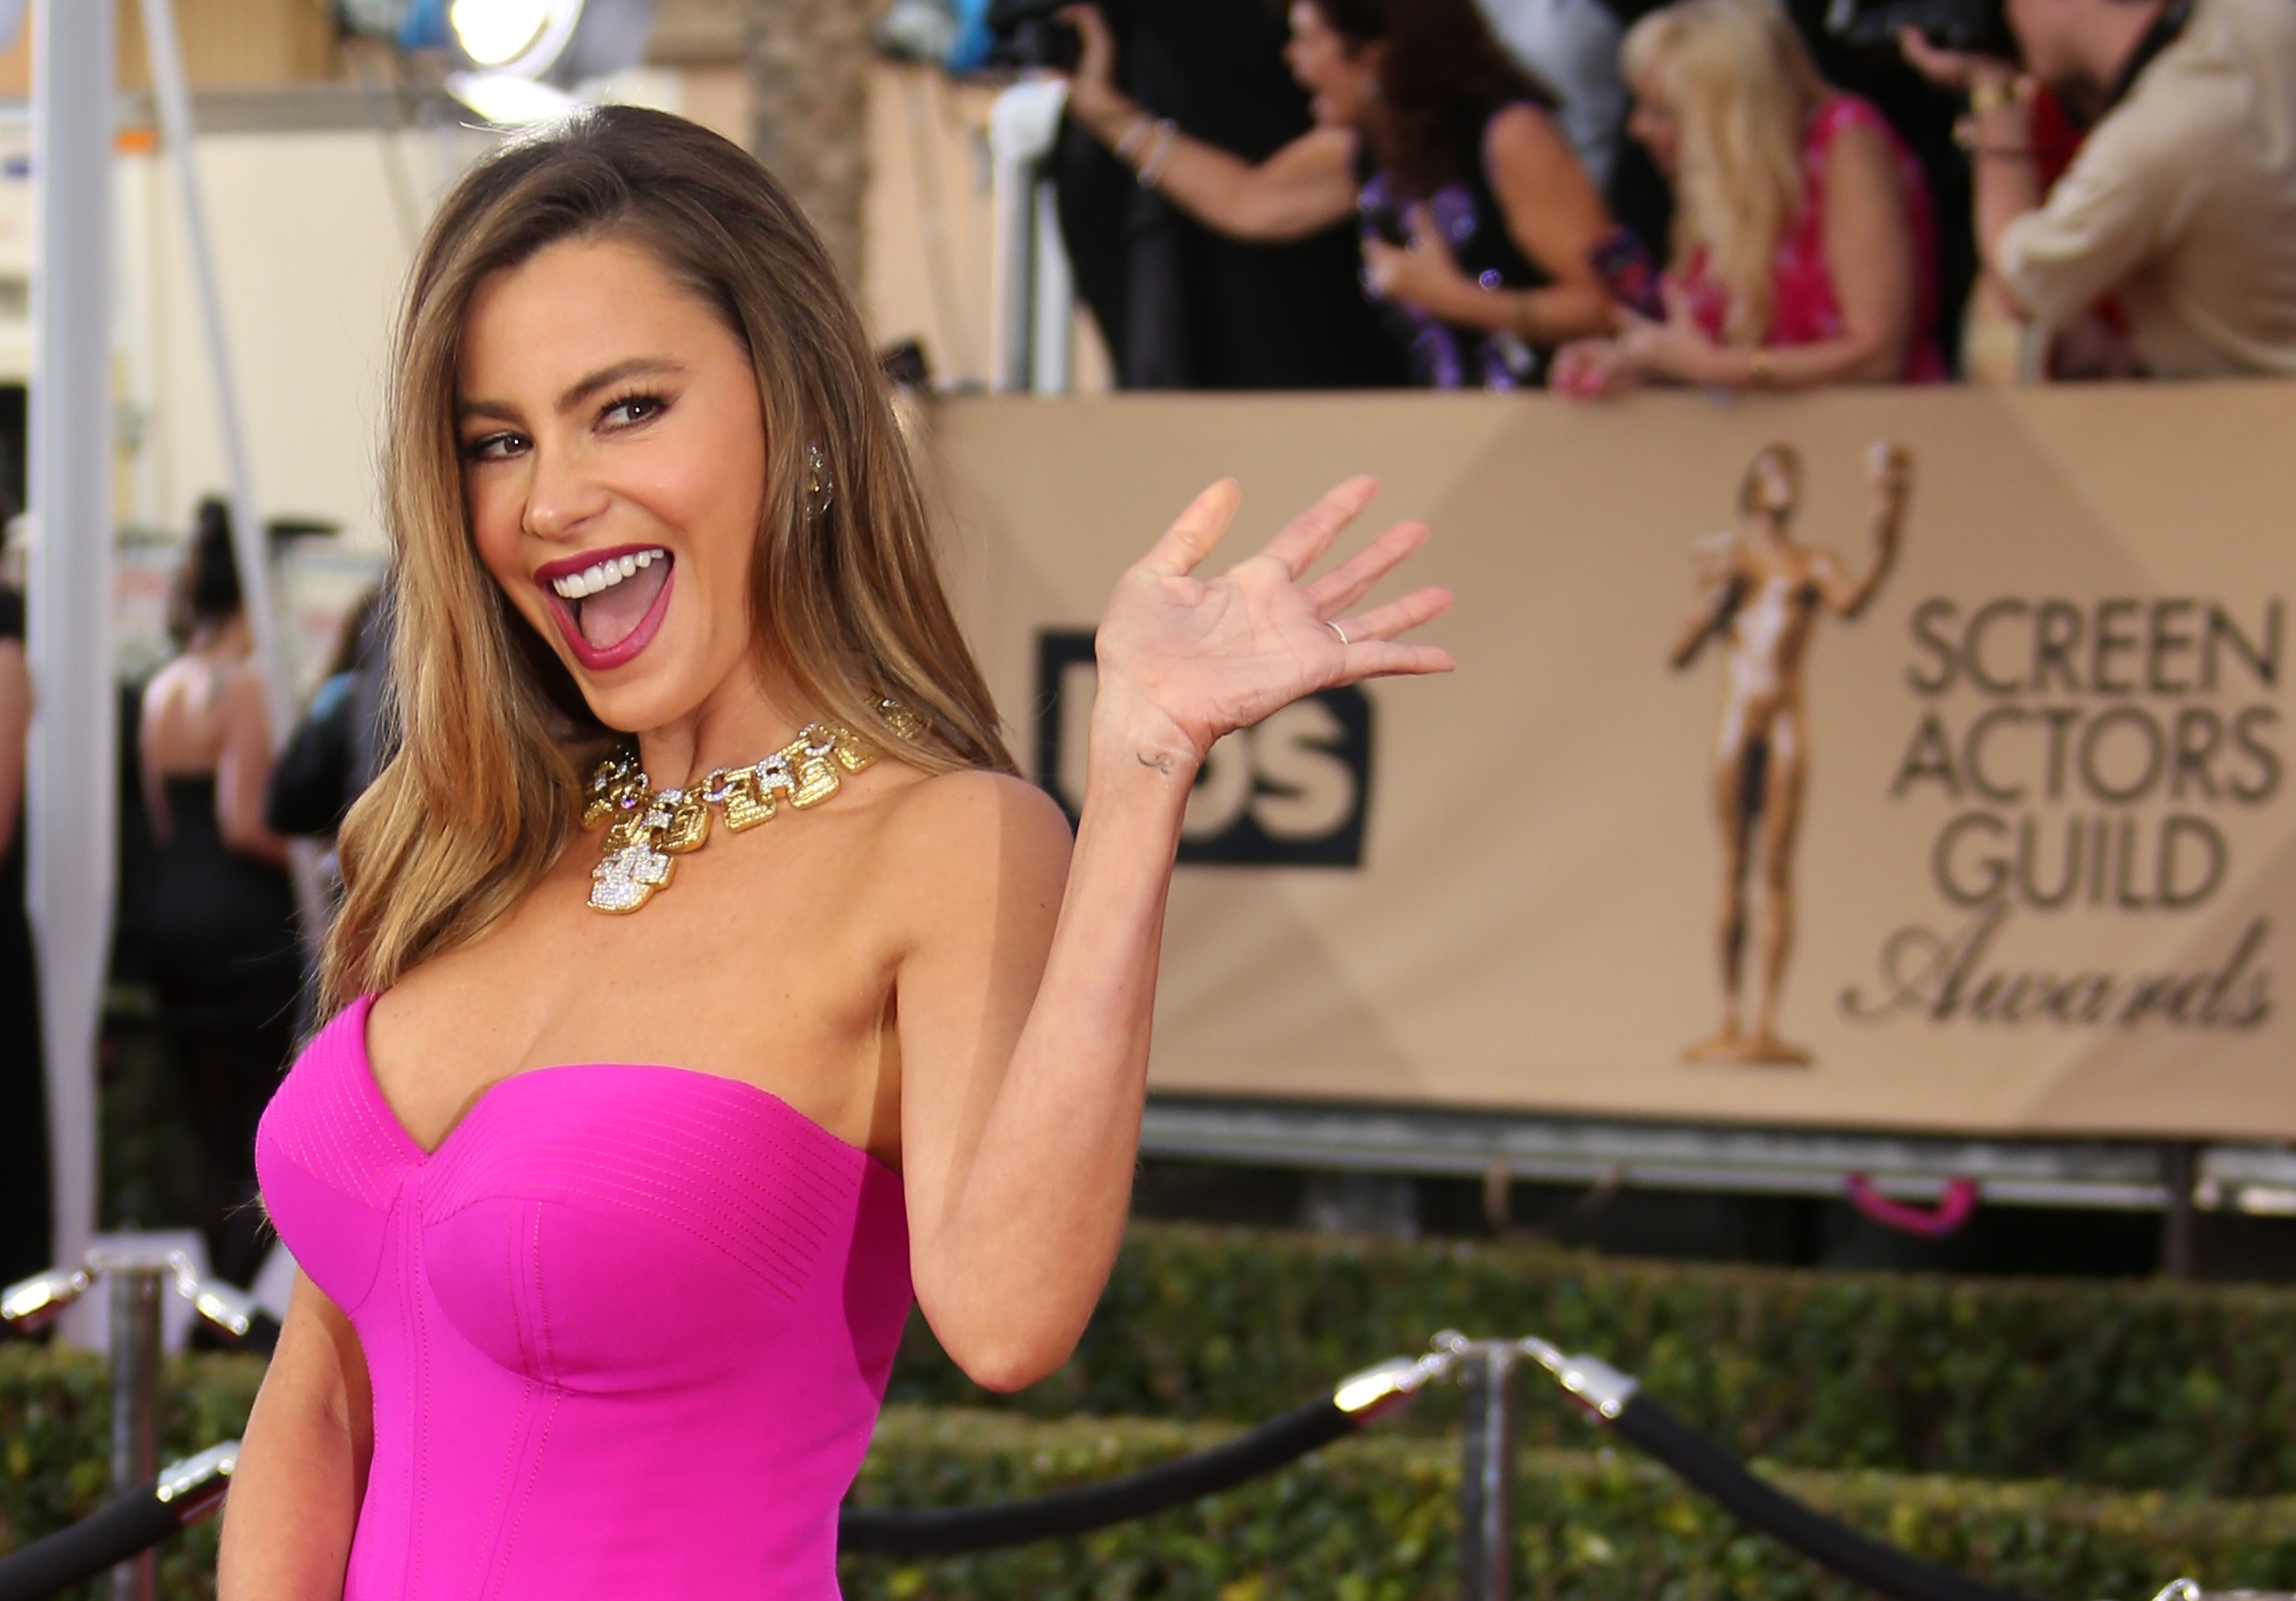 Sofia Vergara just proved she looks ridiculously amazing in literally ANY outfit